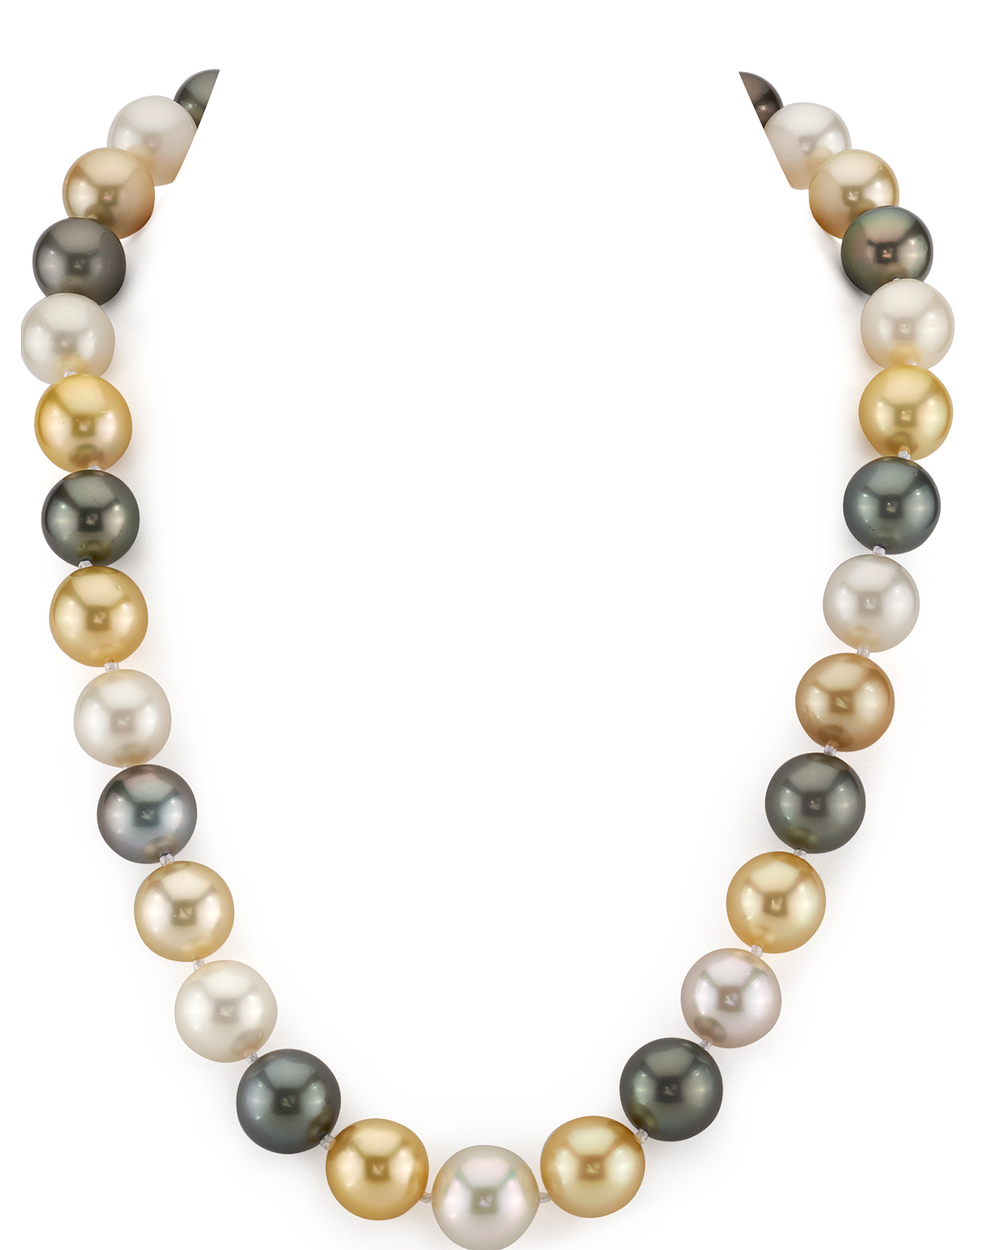 12-14mm South Sea Multicolor Pearl Necklace - AAAA Quality